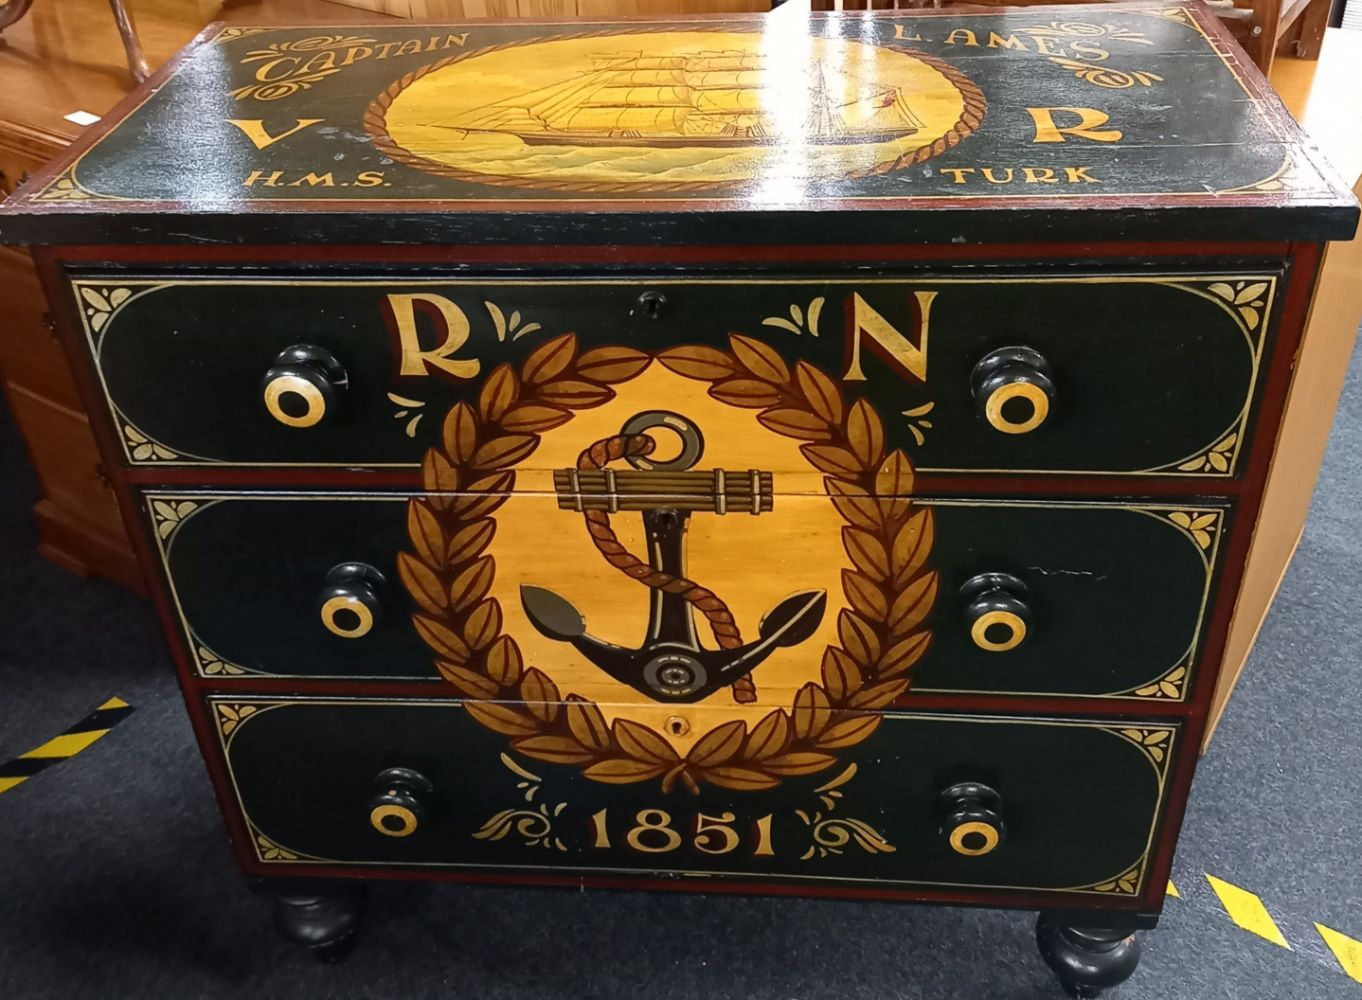 Whitton & Laing - Queens Road Auctions - ANTIQUE AND MODERN FURNISHINGS, SILVER, JEWELLERY, COINS & COLLECTABLES